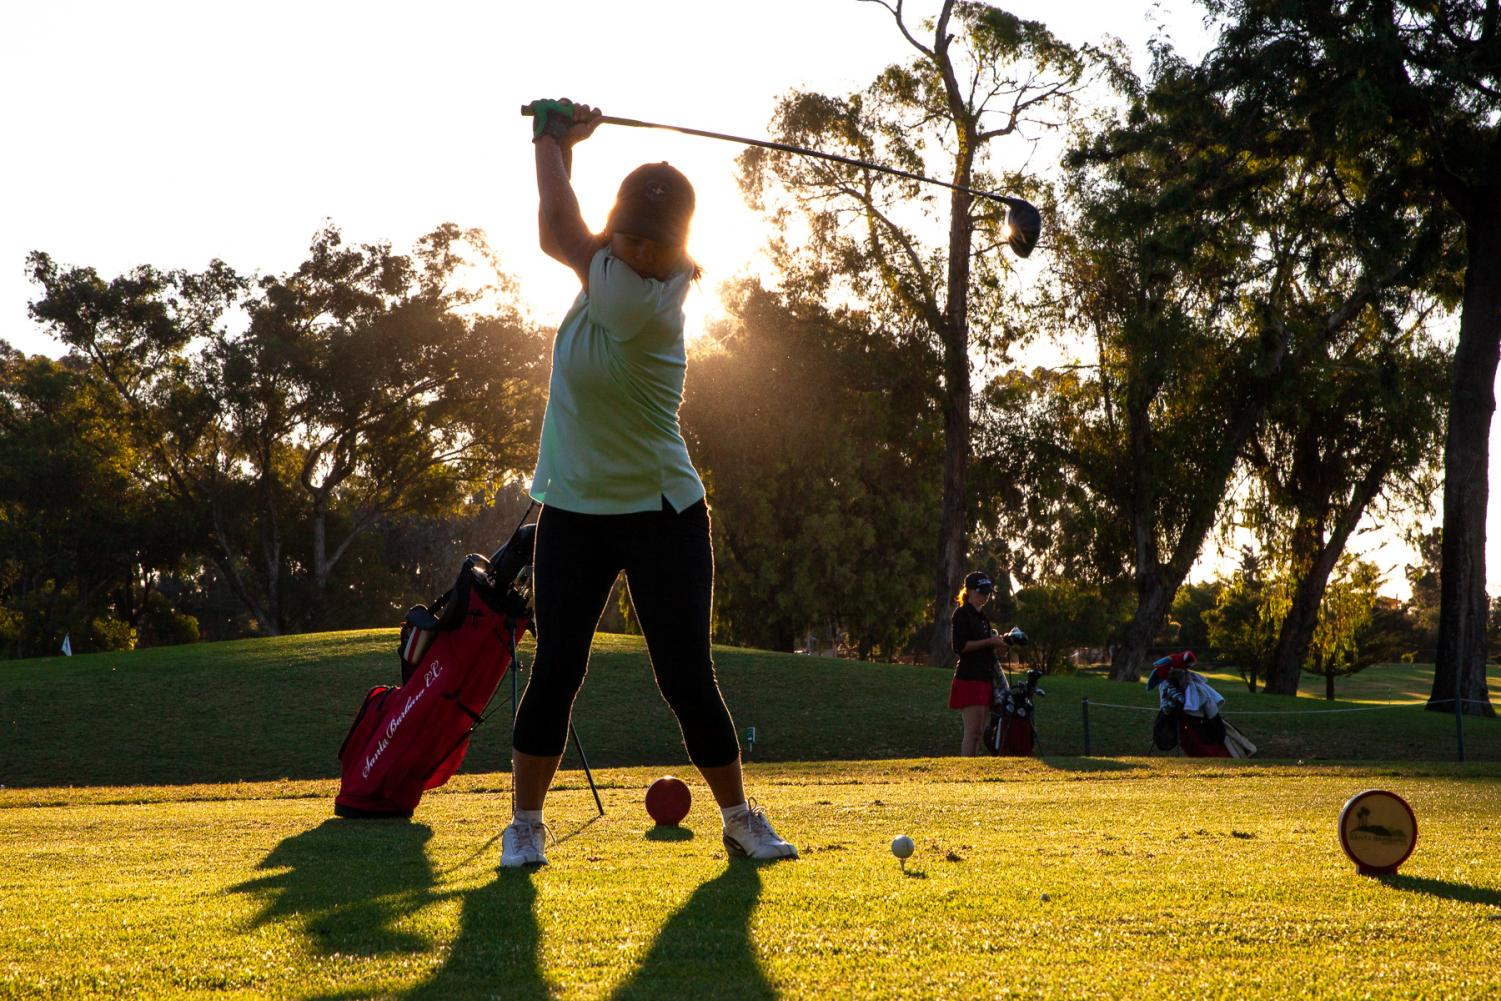 Pratima Sherpa swings to drive the ball down the fairway at the Santa Barbara Golf Club for her 18 hole practice game early Wednesday, Oct. 23 in Santa Barbara, Calif.